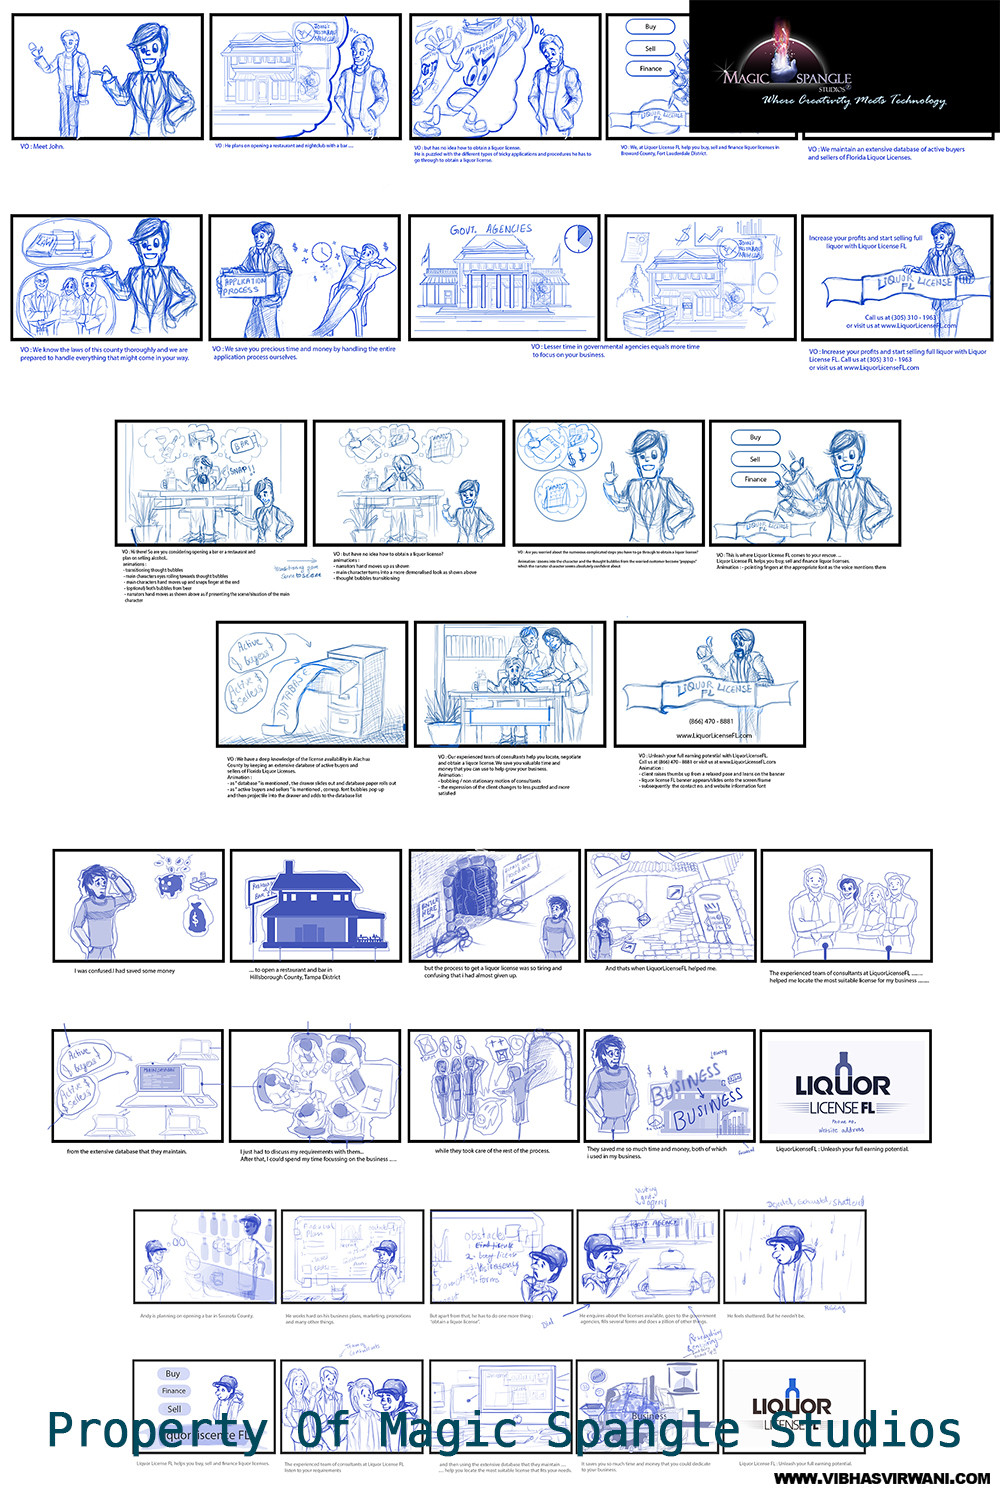 Vibhas virwani blue storyboards